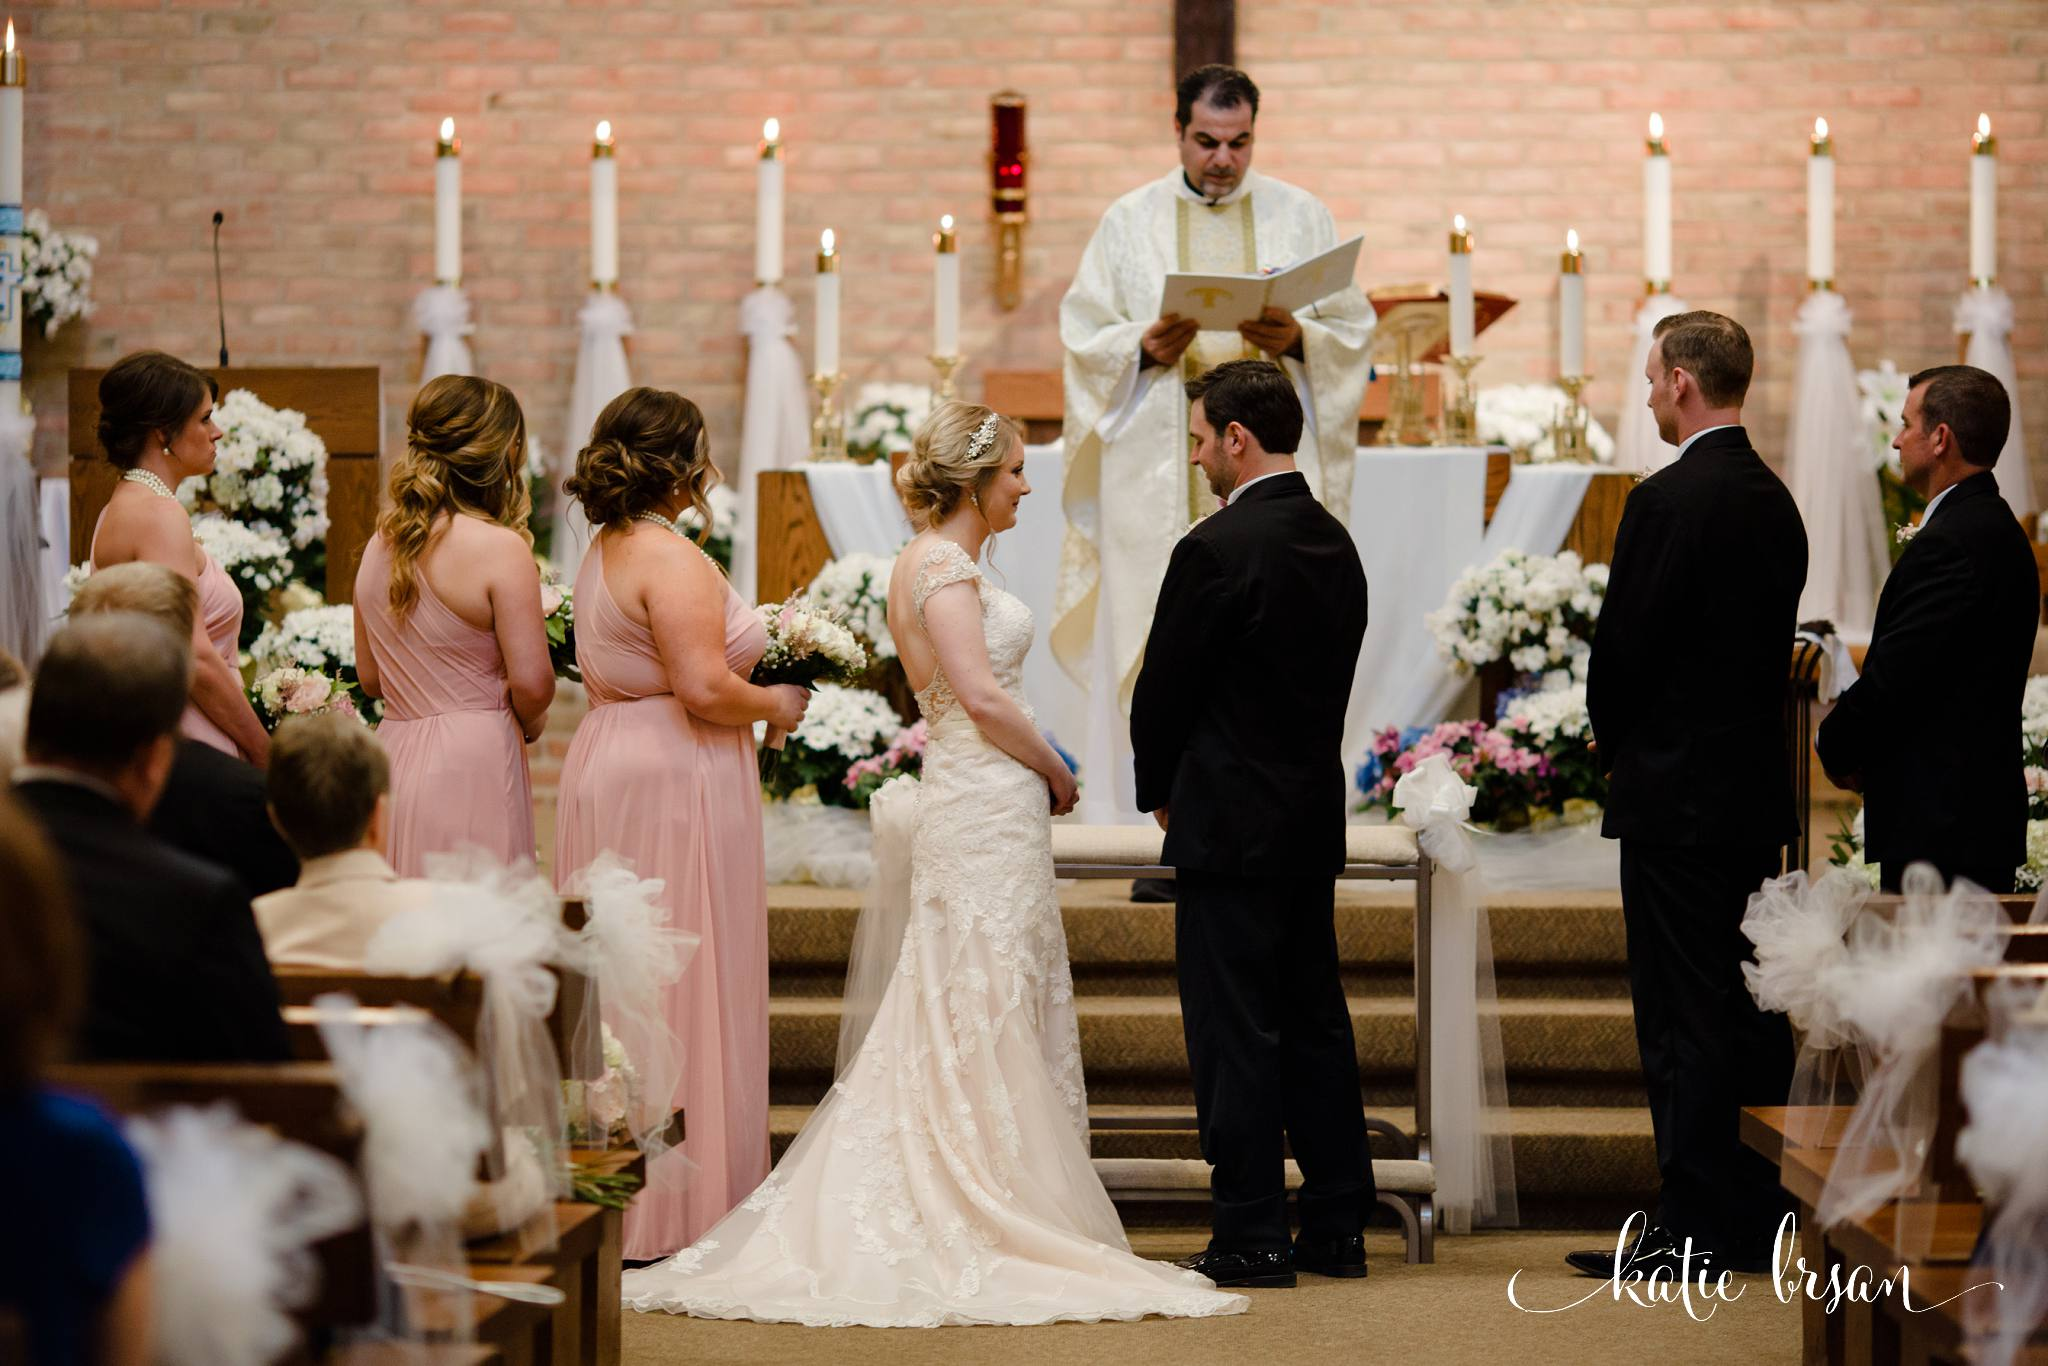 Mokena_Lemont_Wedding_Ruffled_Feathers_Wedding_1353.jpg